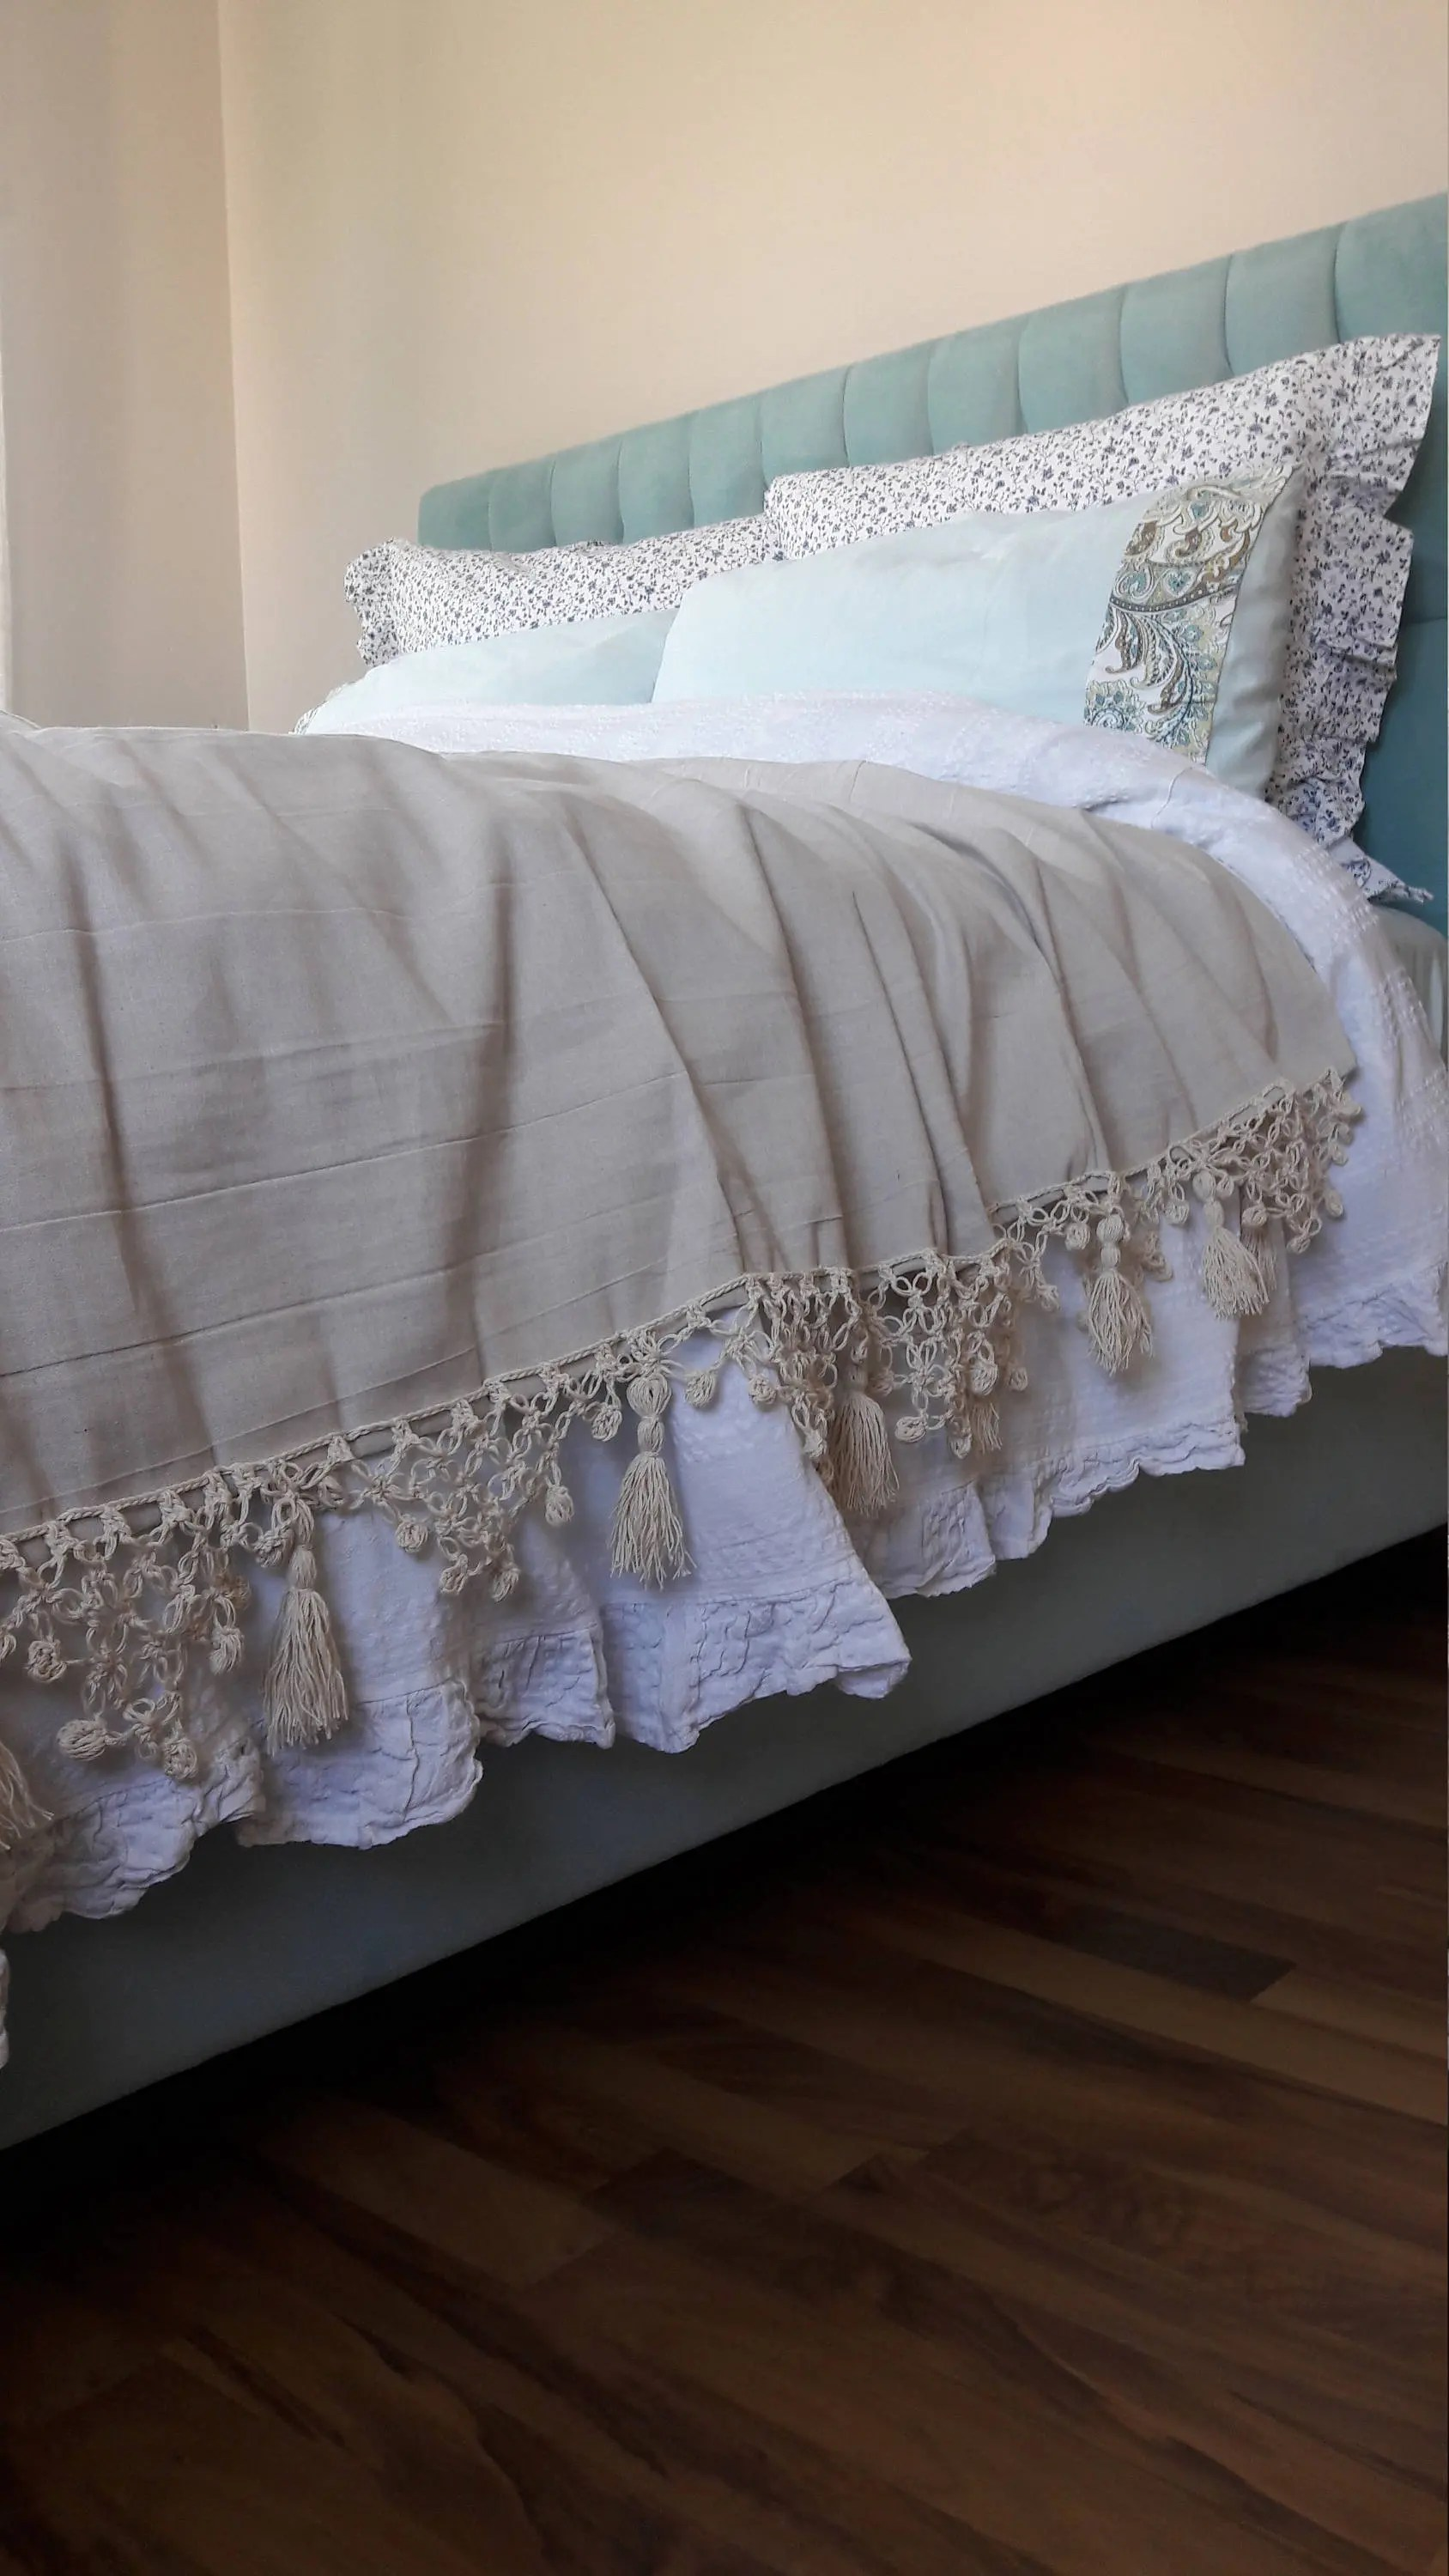 Sofa King Queen Tassel Throw Blanket Bedspread King Queen Shabby Chic Bedding Bed Spread Oatmeal Ivory Crochet Lace Turkish Linen Coverlet Sofa Throw Covers